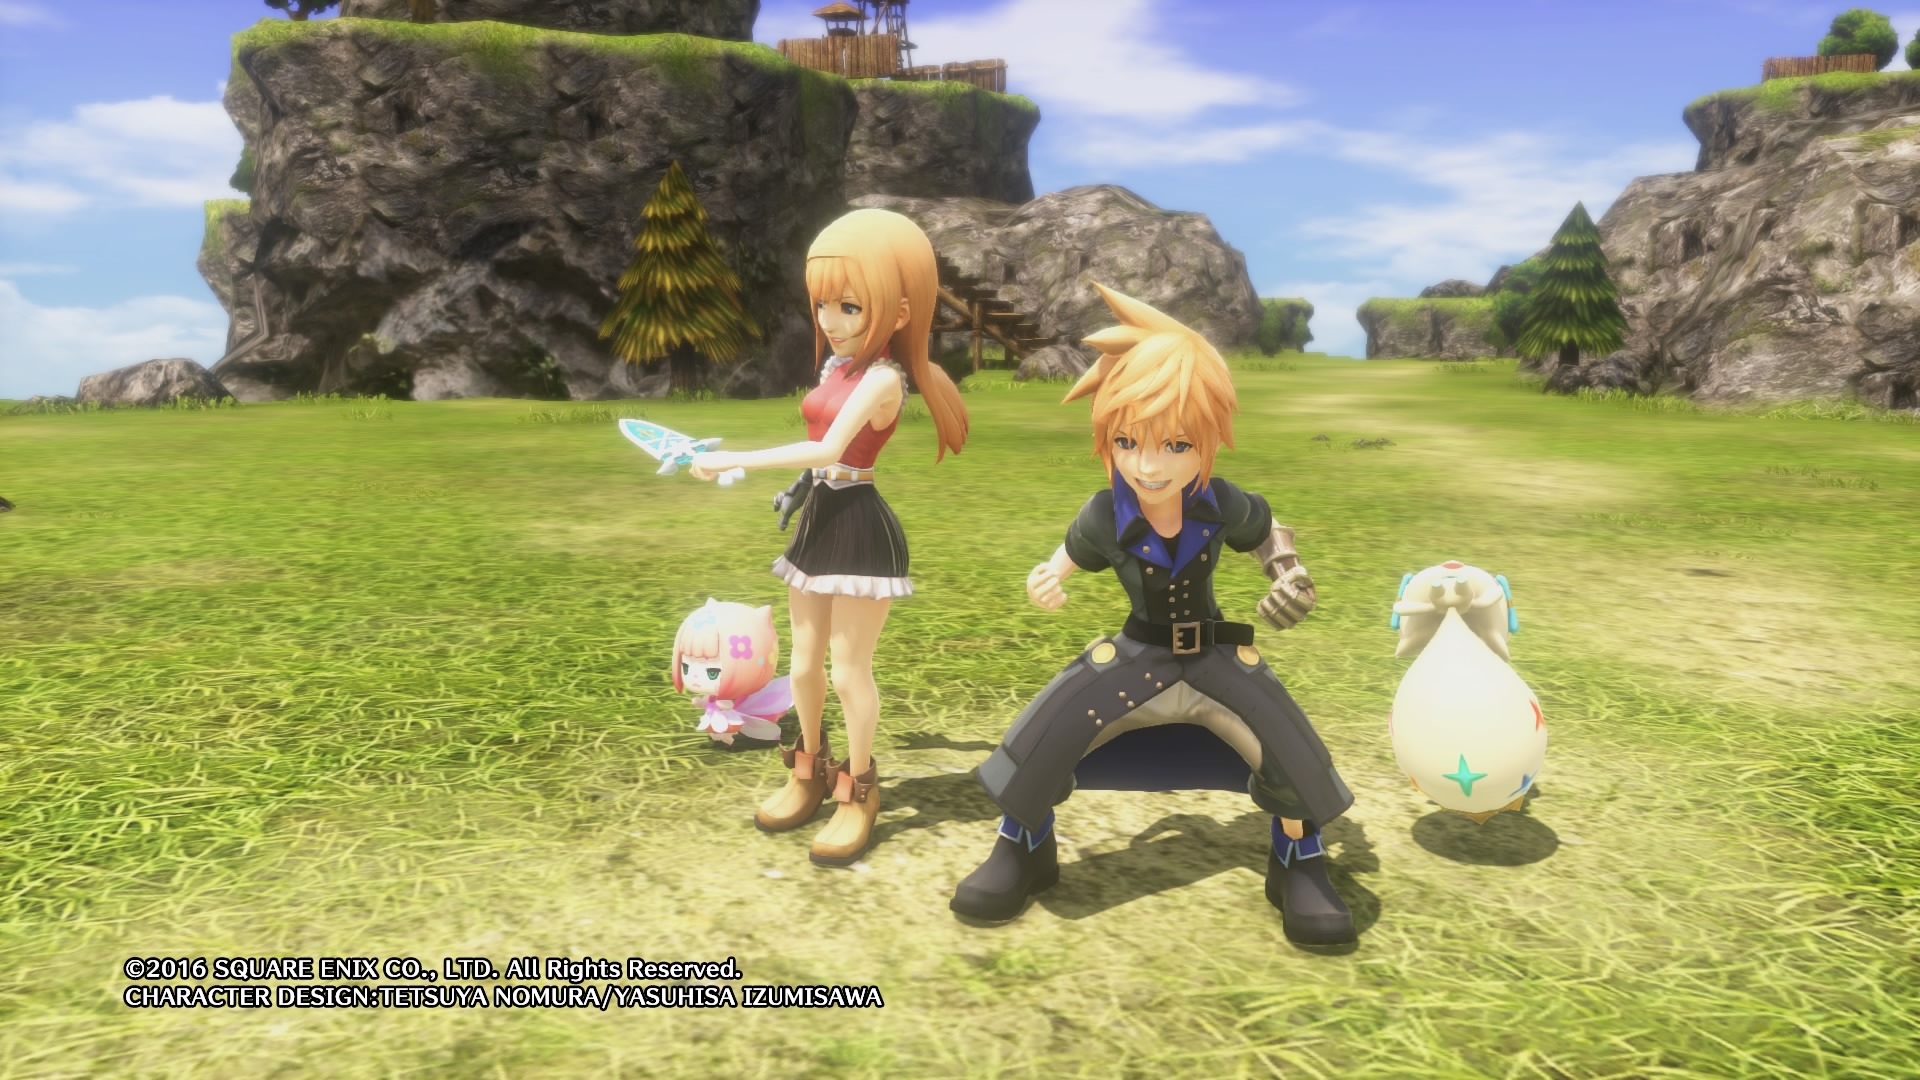 WORLD OF FINAL FANTASY Dungeon Demo_20161017171209